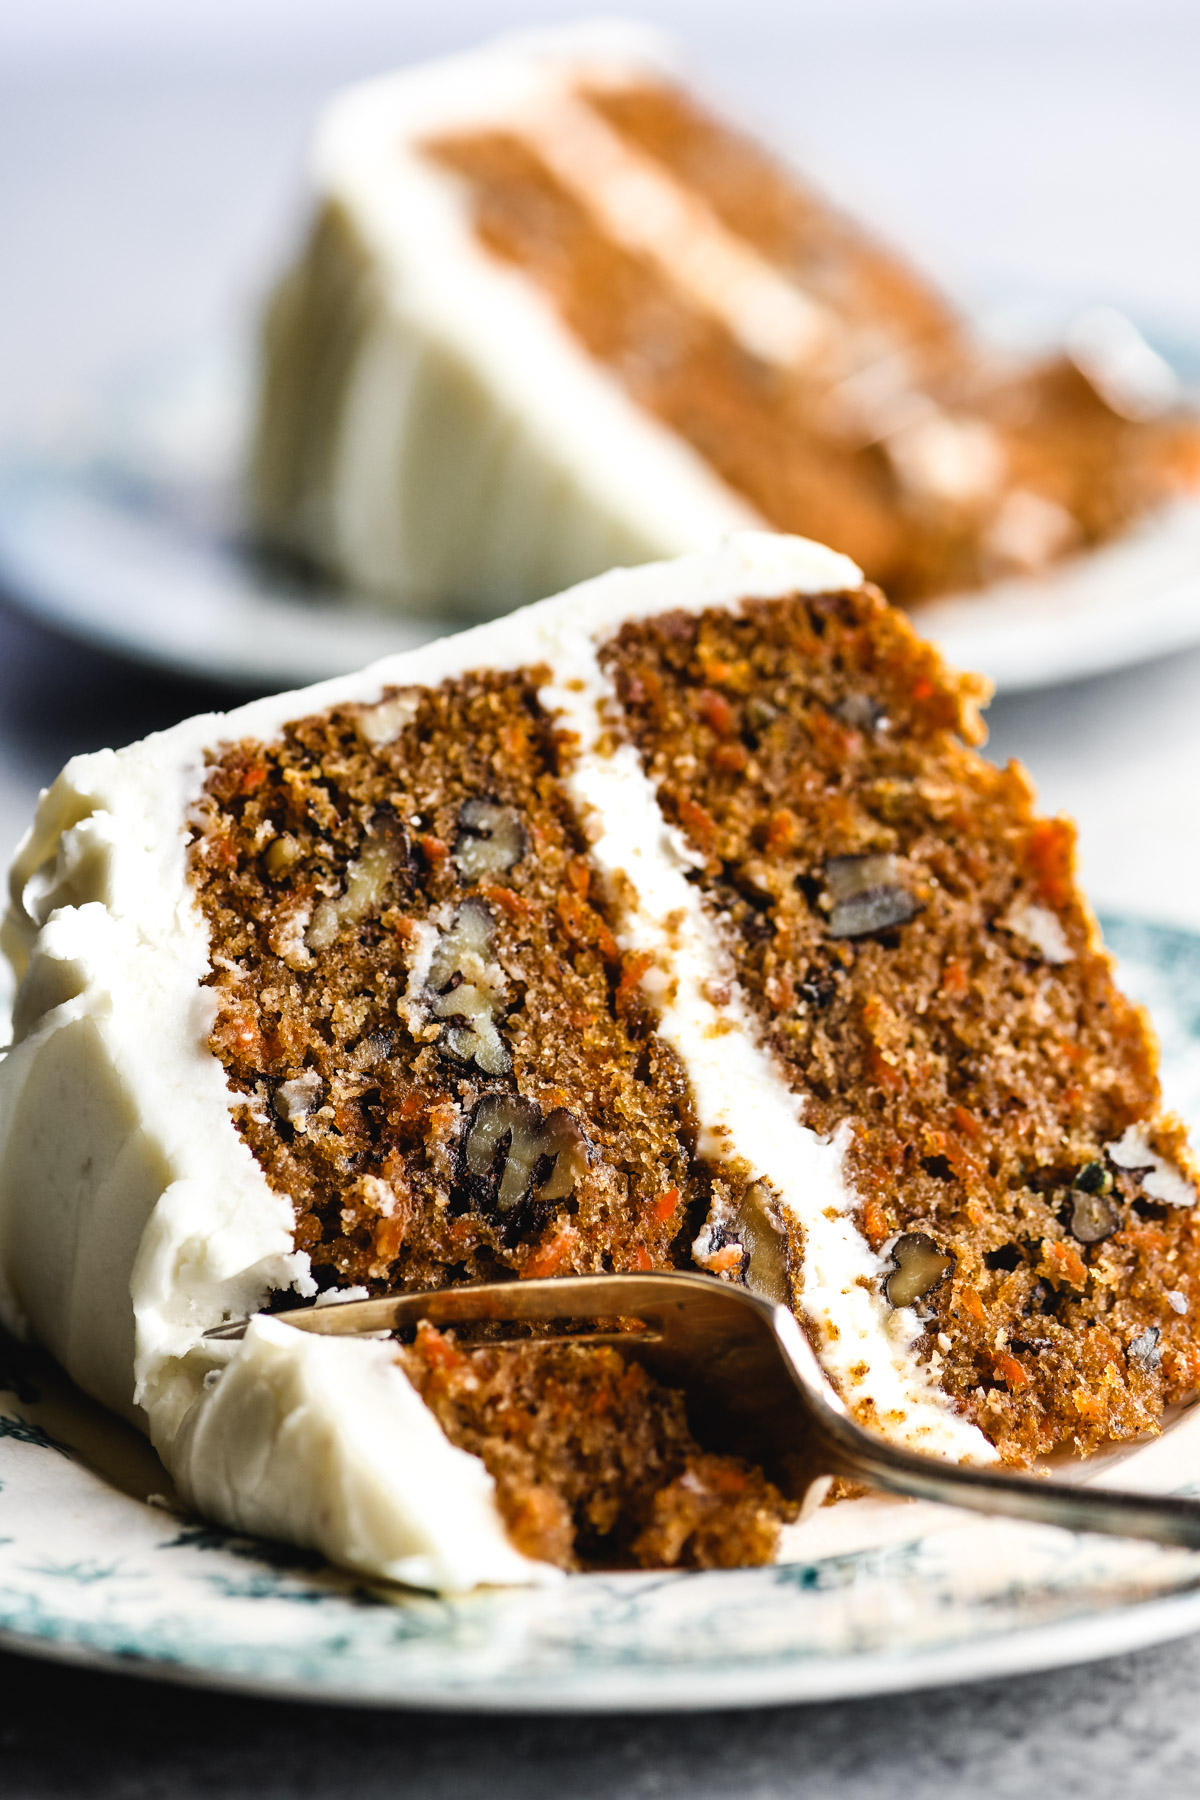 a slice of carrot cake, with cream cheese frosting